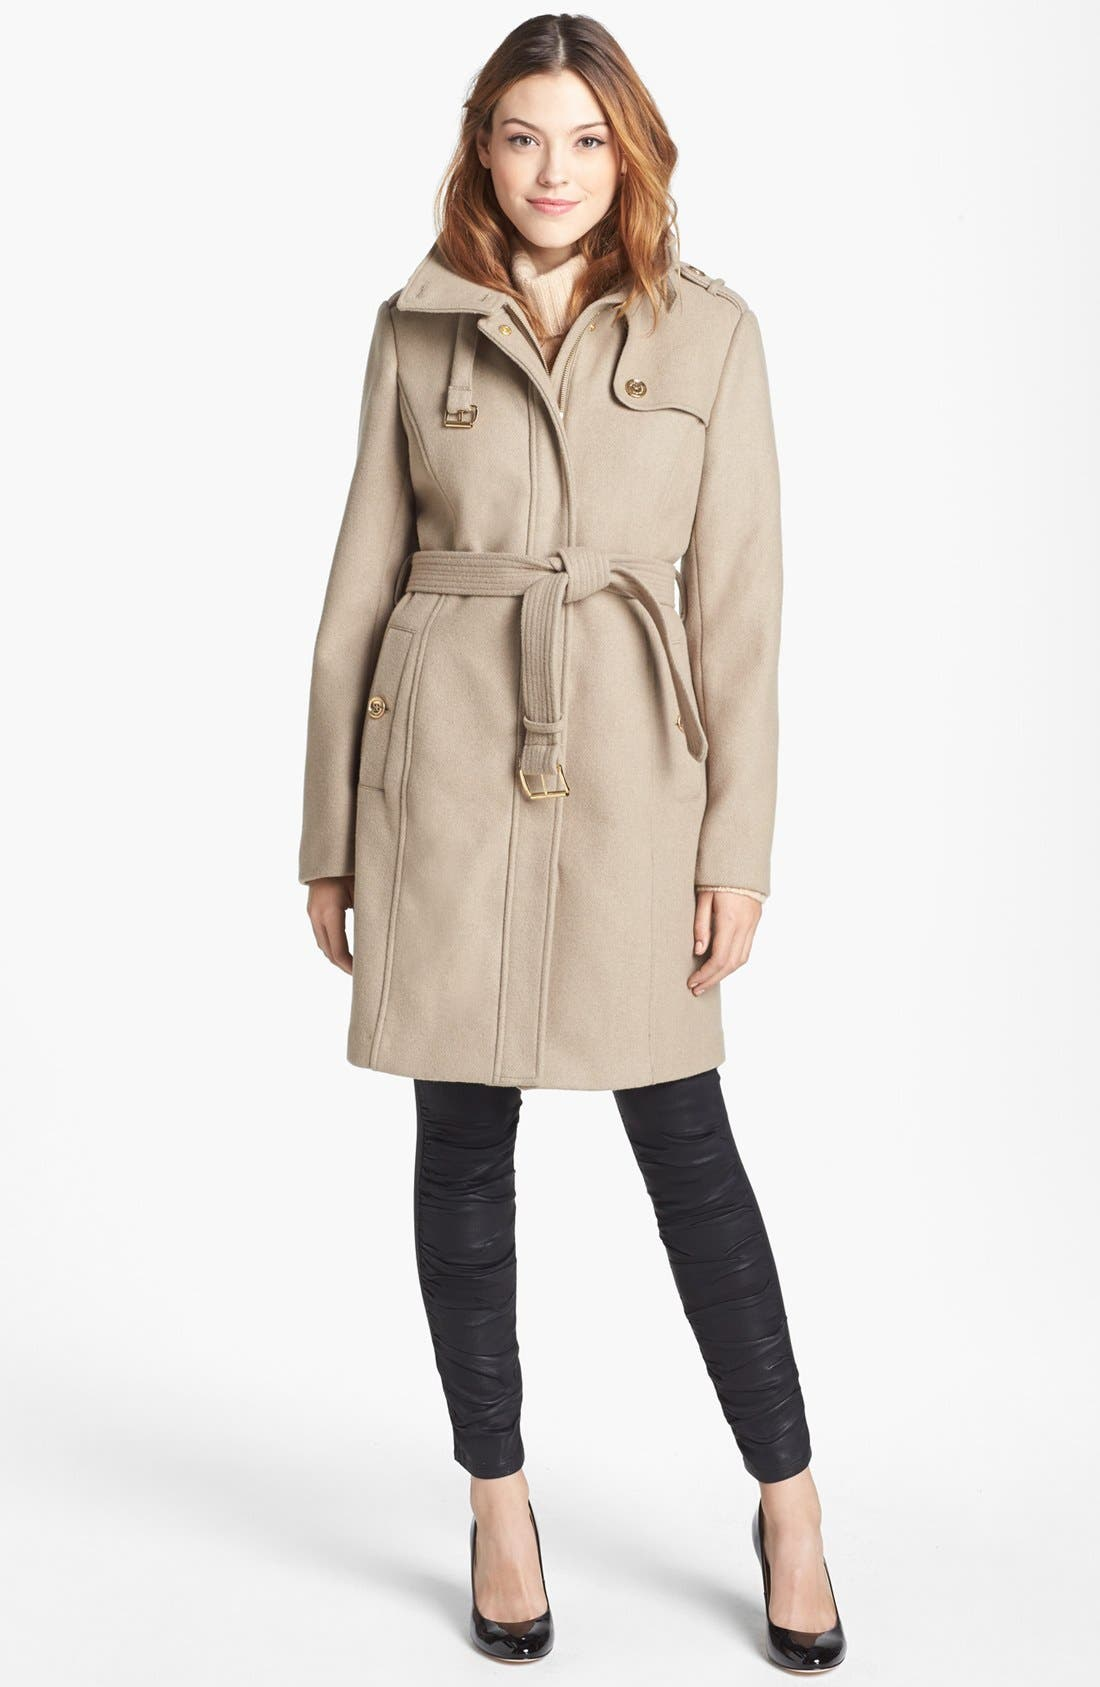 Alternate Image 1 Selected - MICHAEL Michael Kors Wool Blend Military Trench Coat (Nordstrom Exclusive)